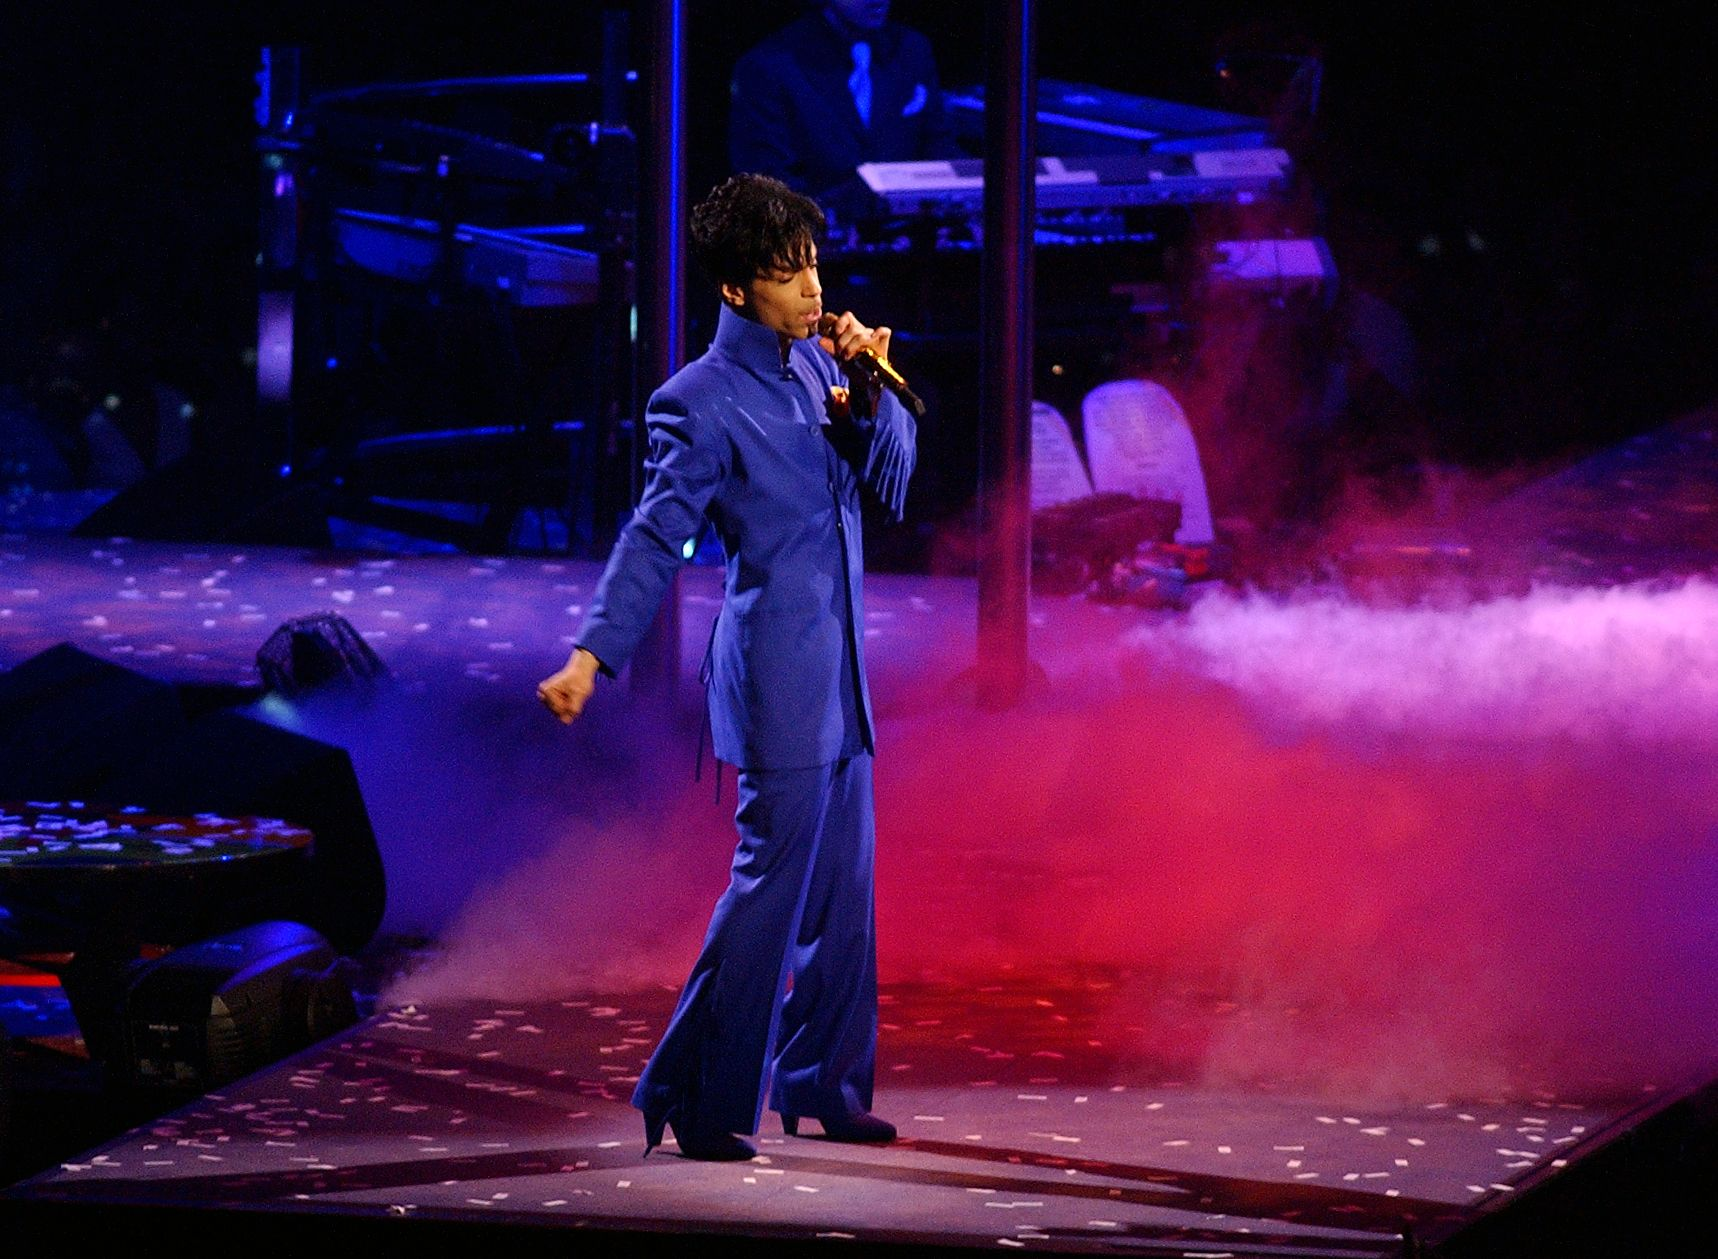 Prince Musicology Tour, Van Andel Arena 2004